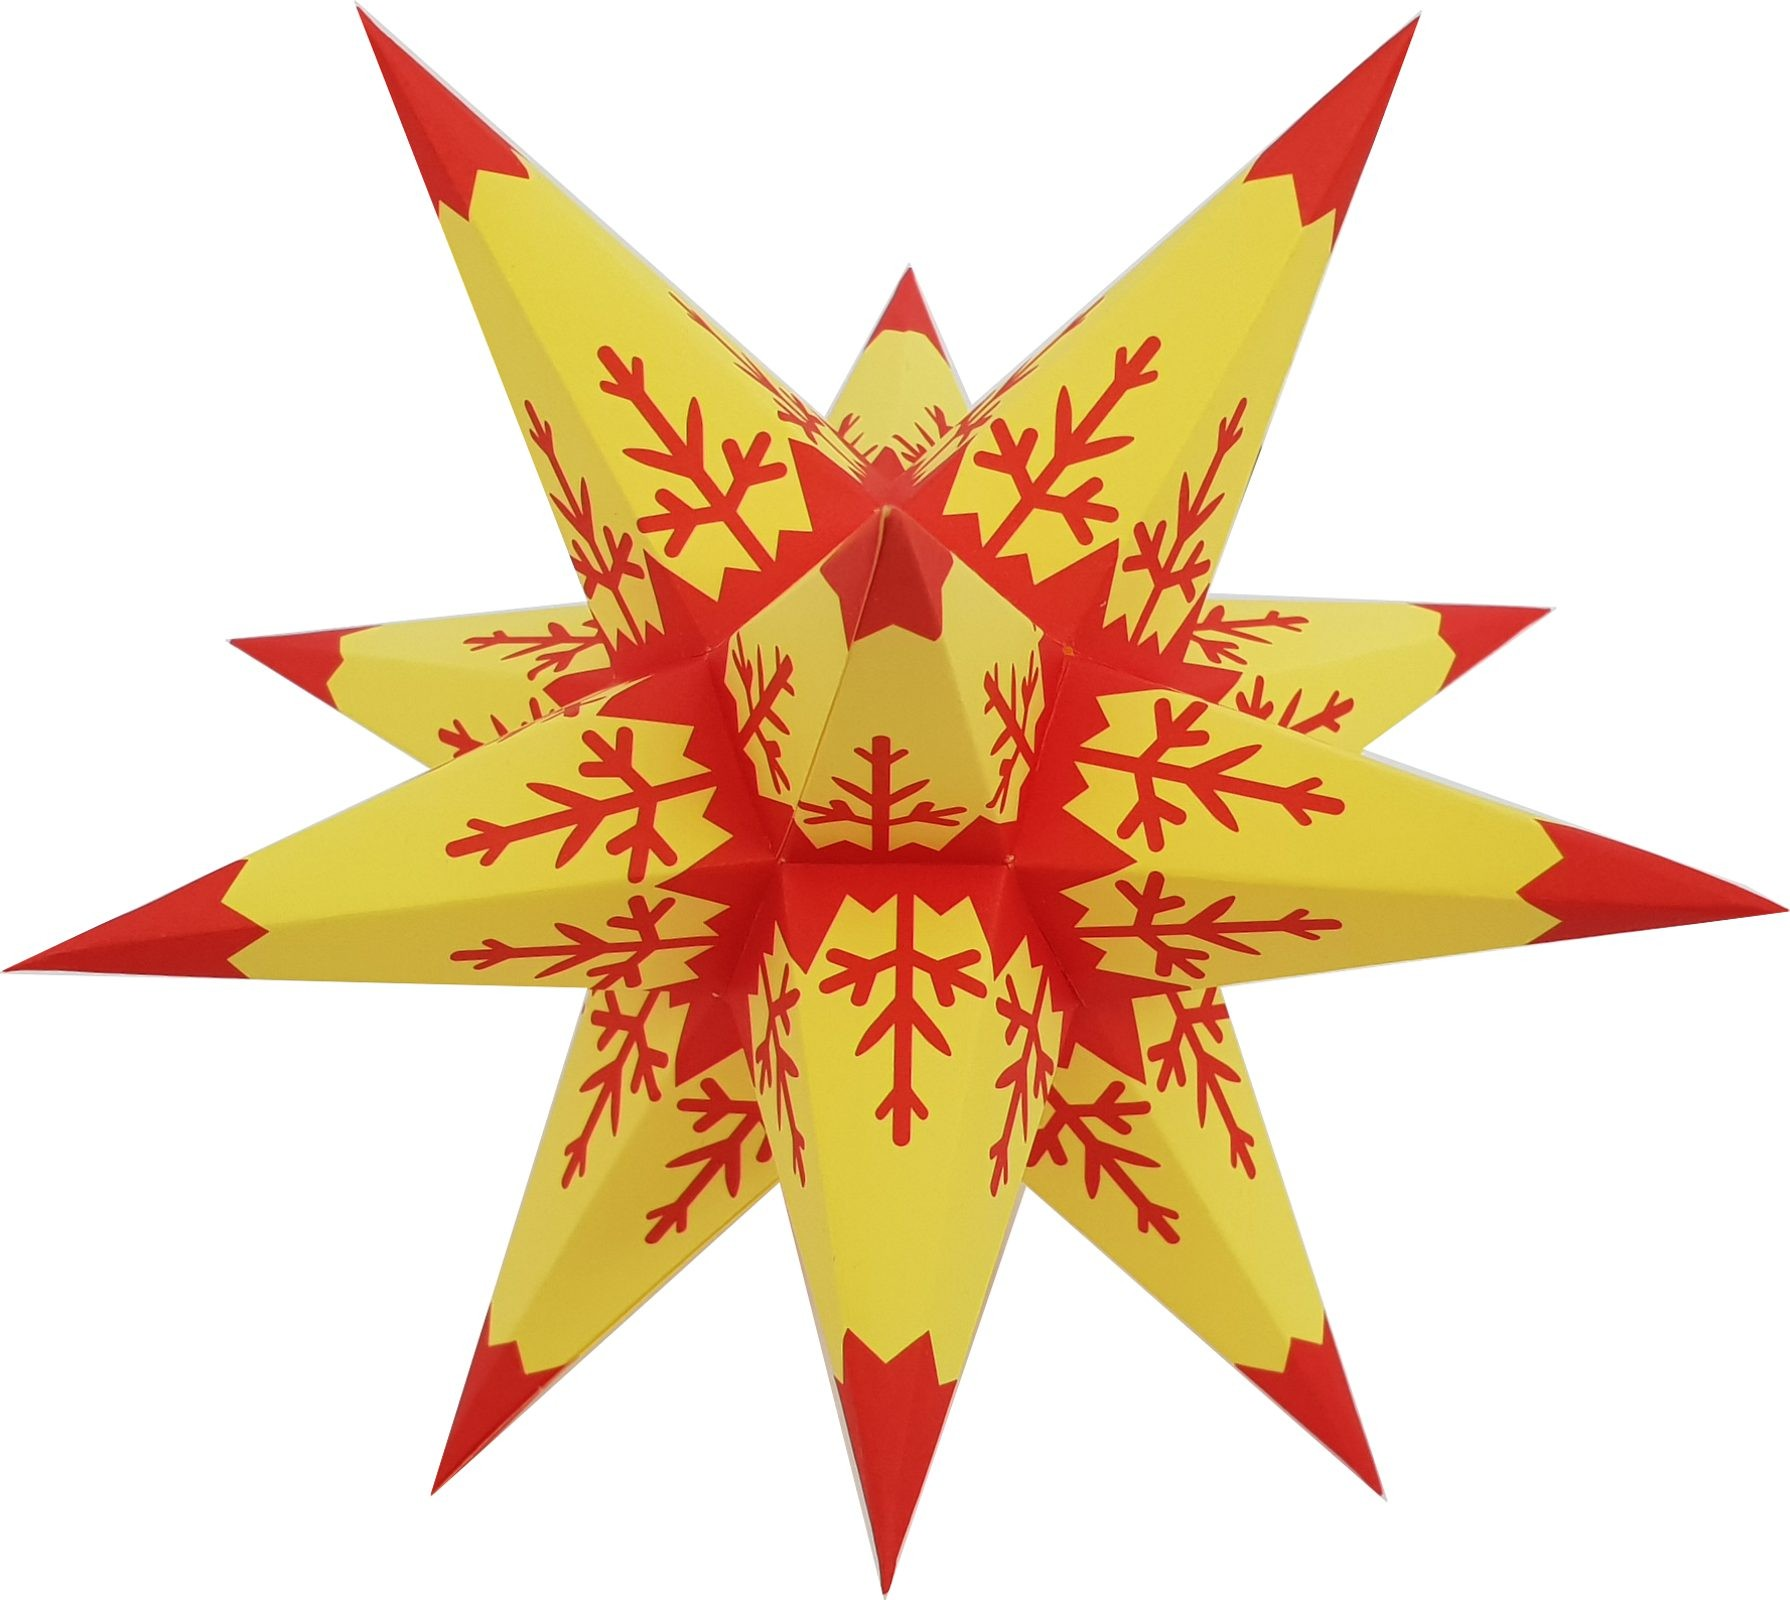 Advent star - yellow core with red pattern and lace